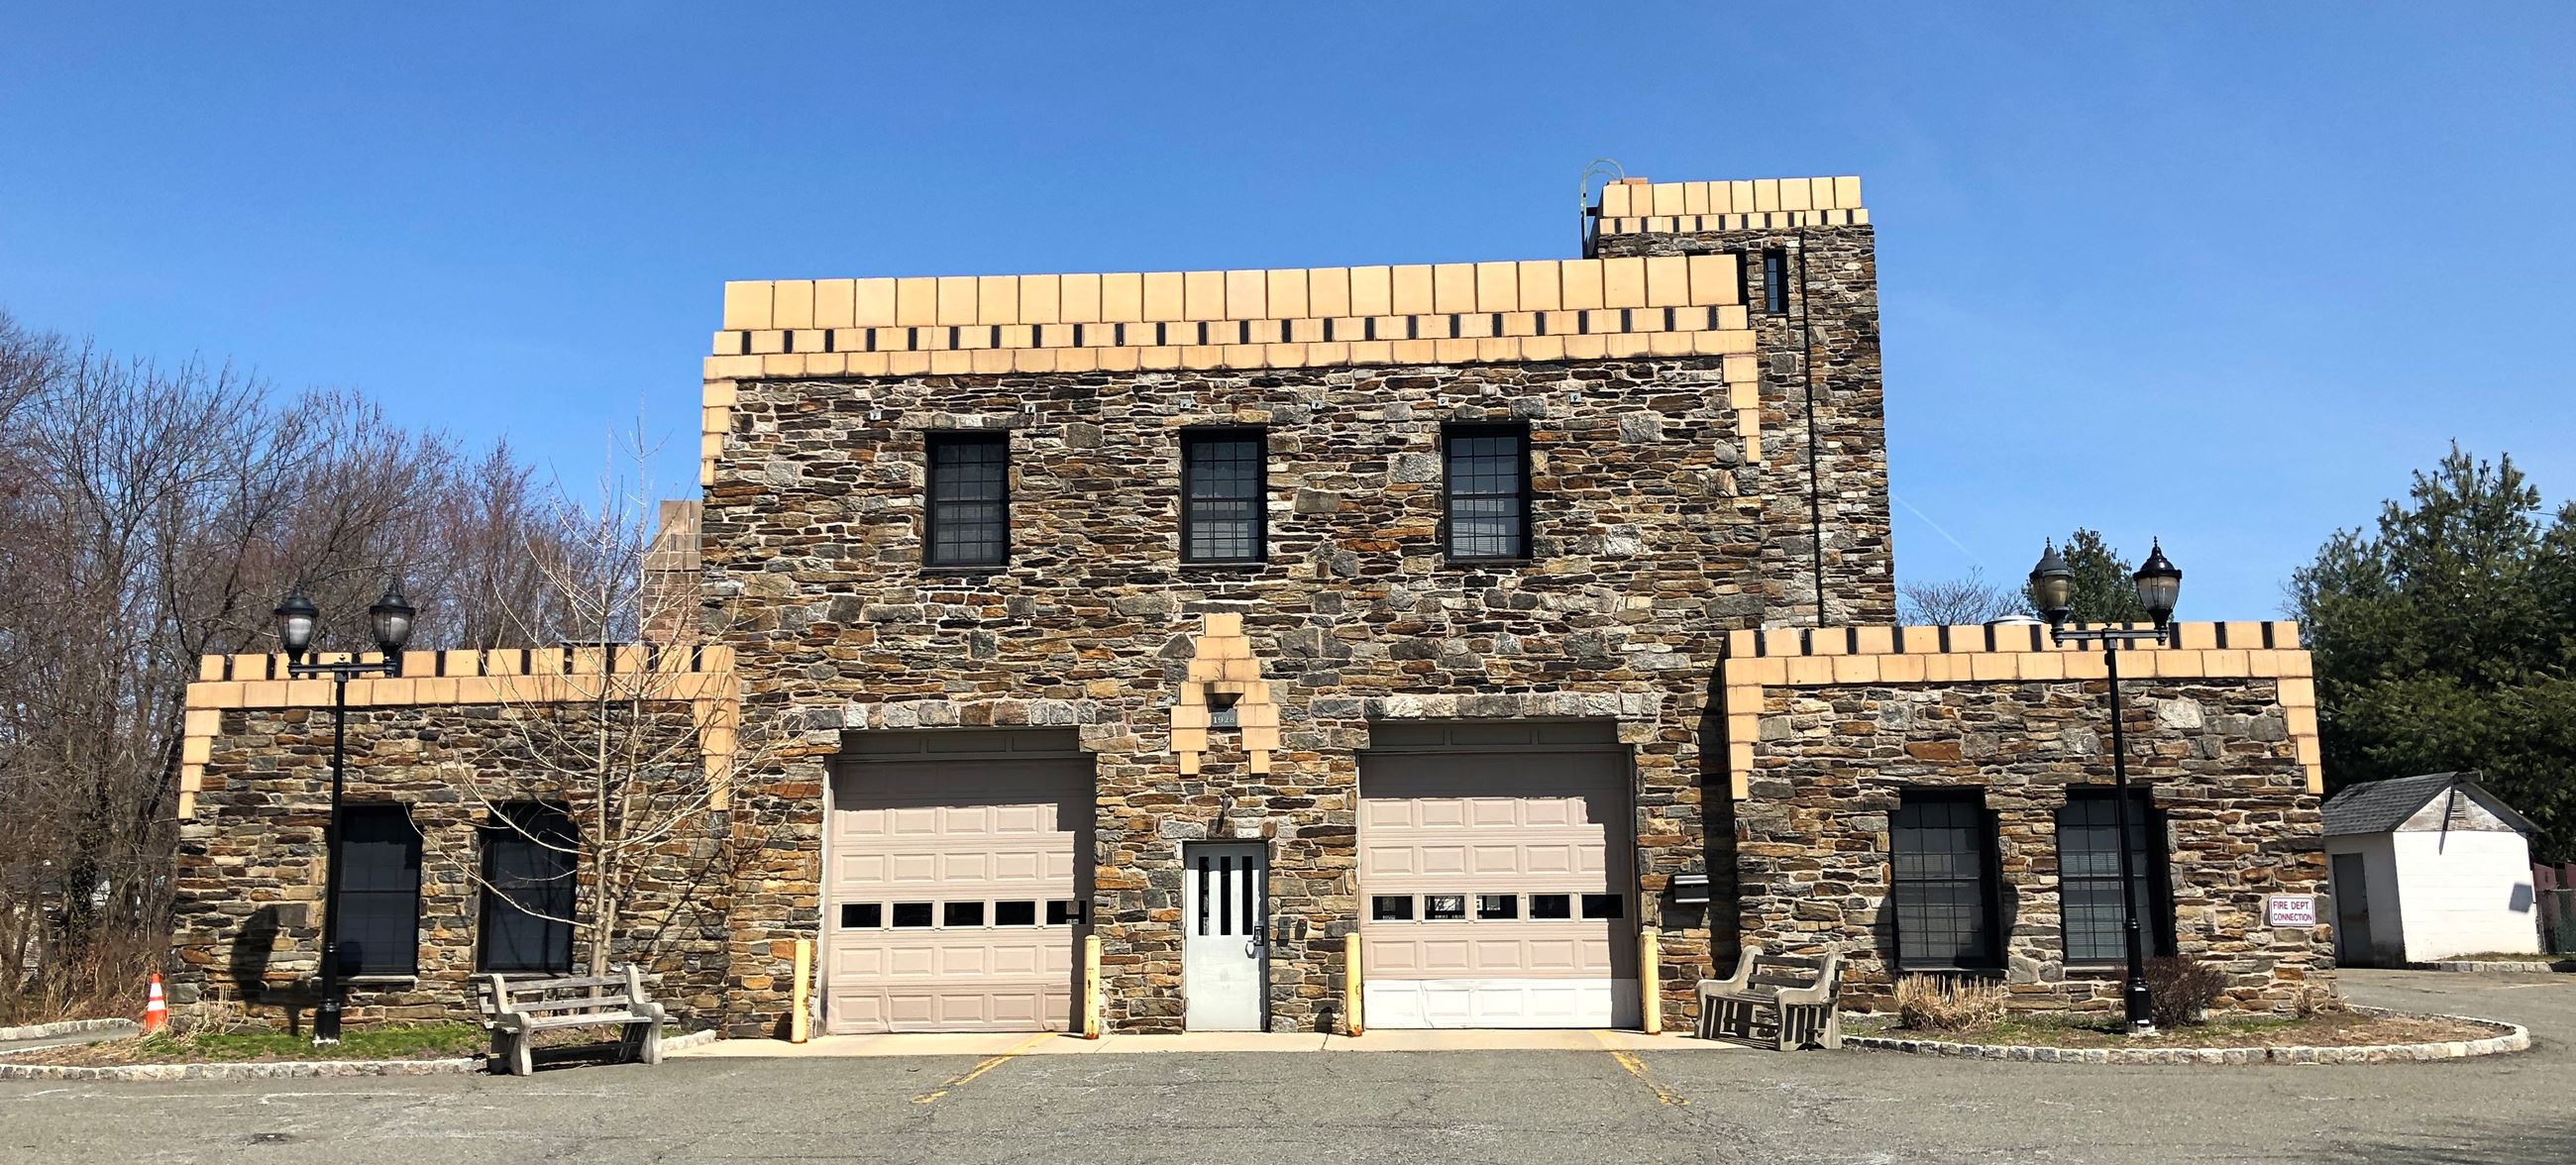 FIrehouse 5 Opens in new window